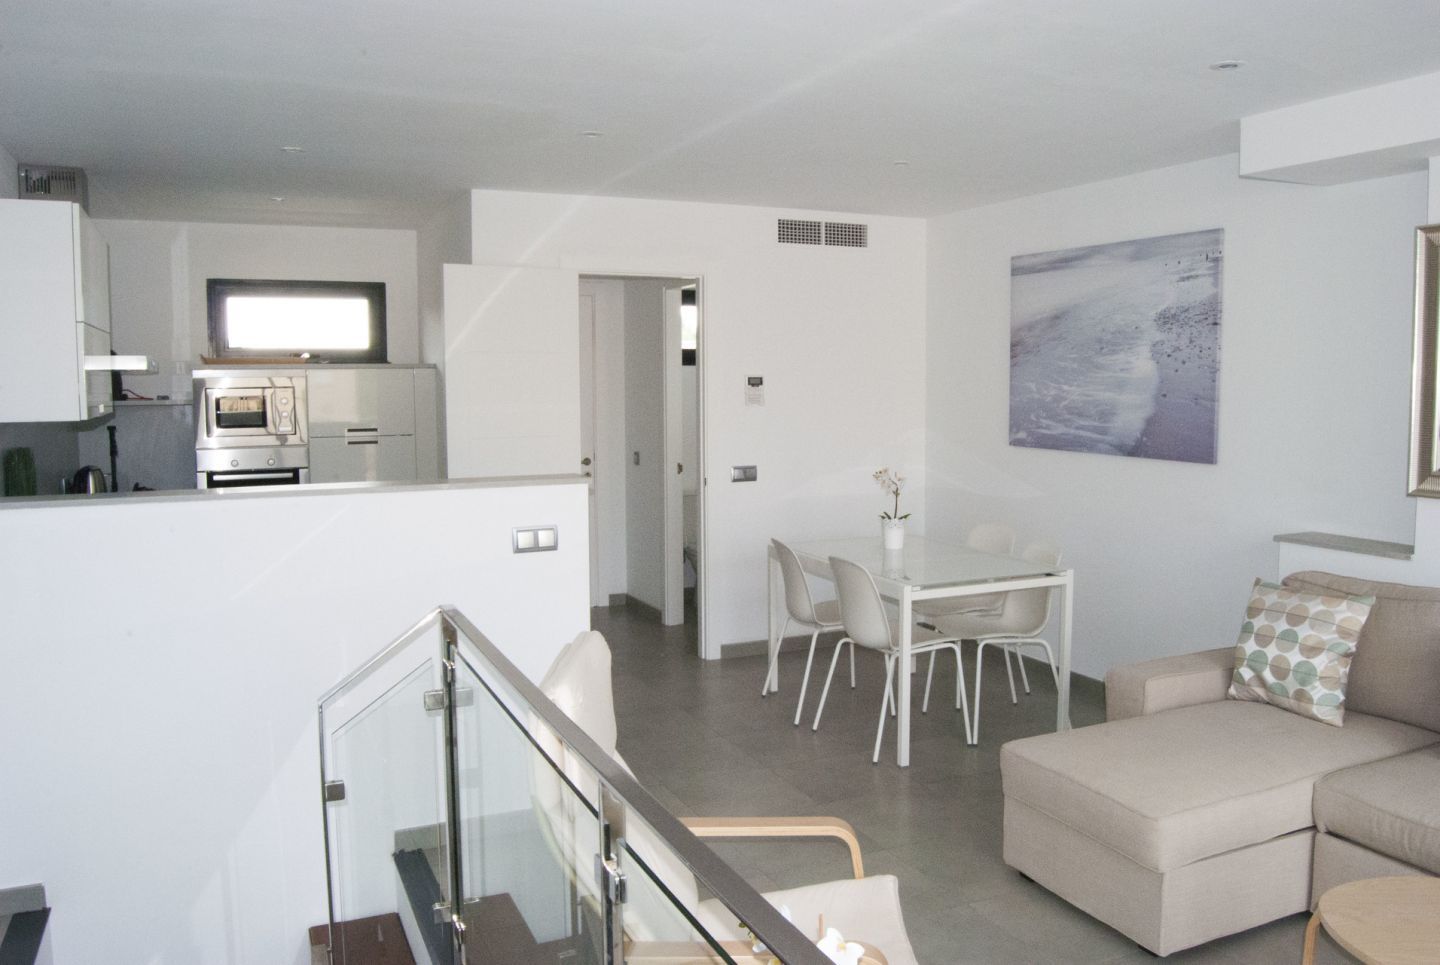 3 Bed Duplex for sale in PUERTO POLLENSA 8